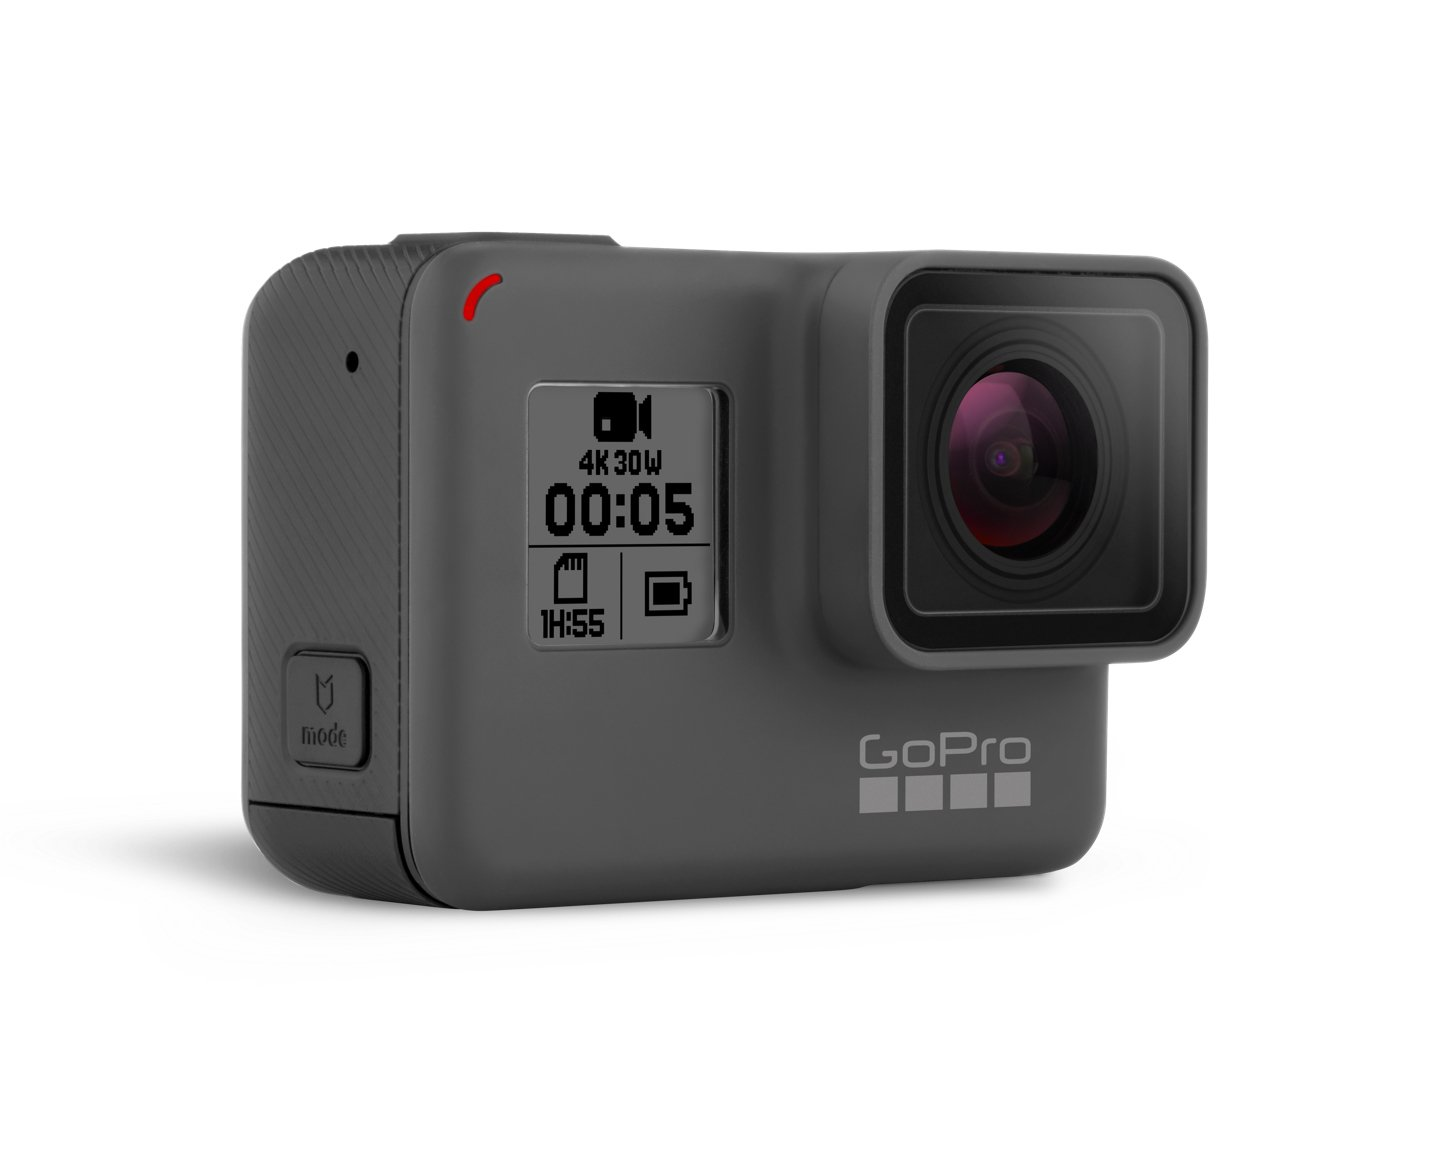 8 GoPro HERO5 Black